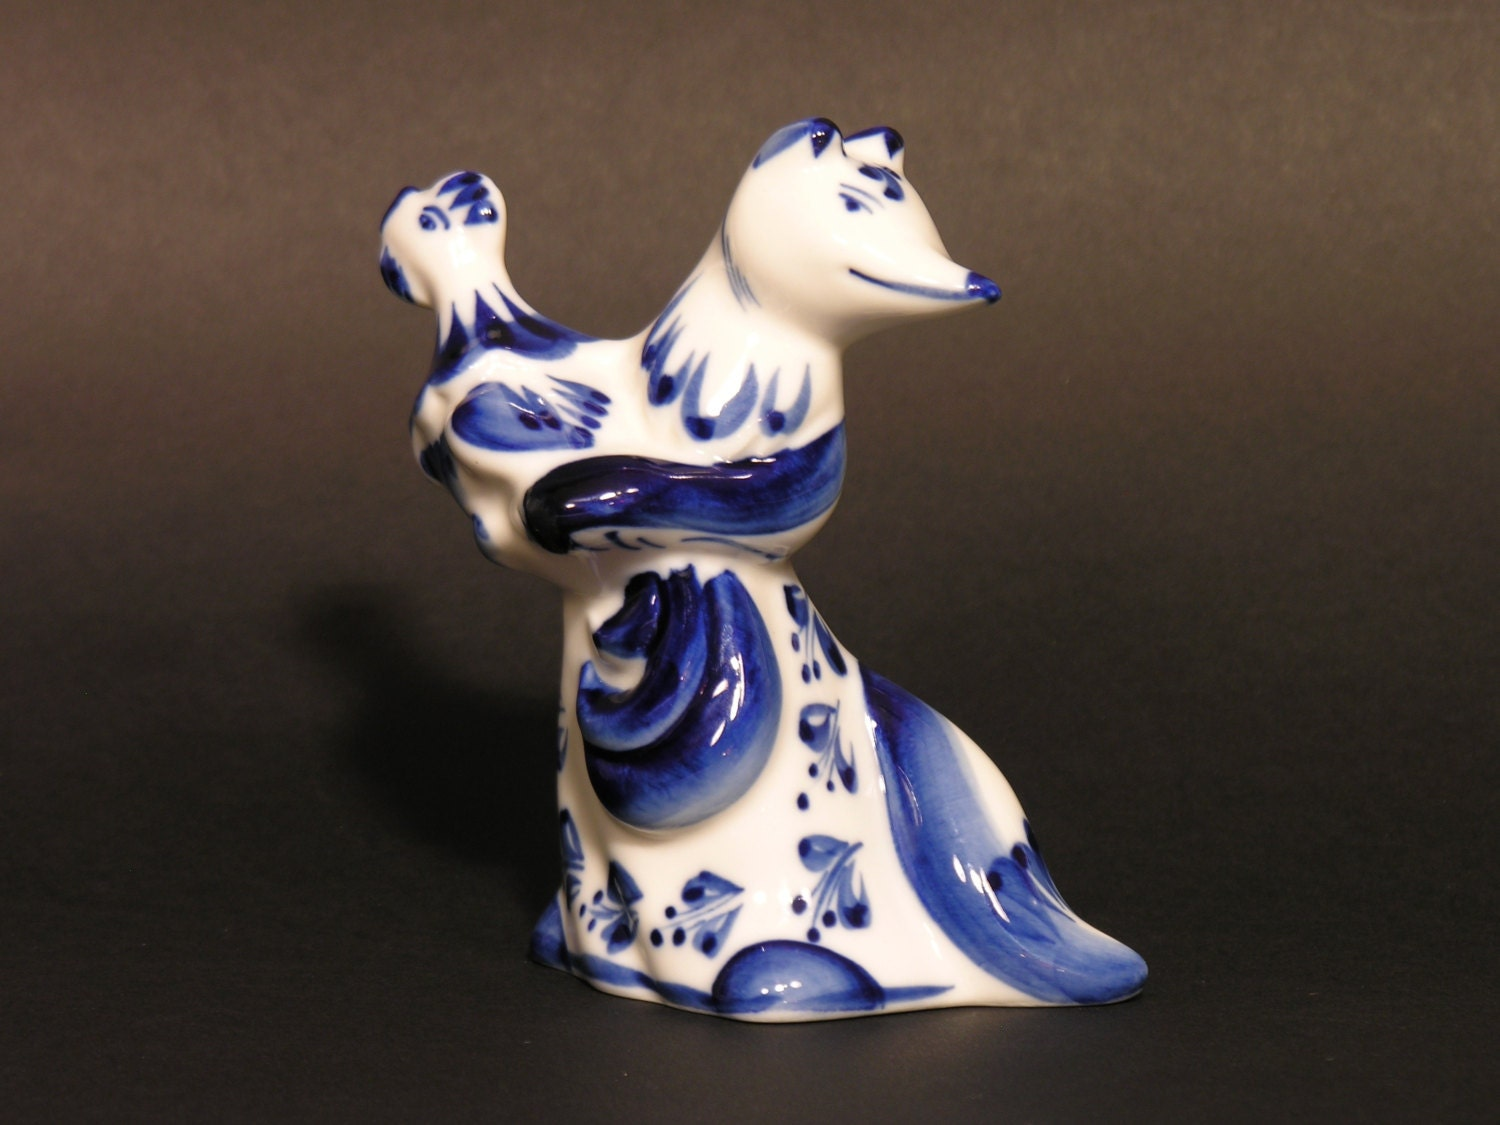 russian porcelain blue lady Japanese blue and white porcelain sitting lady wed, may 30, 2018 3:00 pm utc auction starts in 19 days 11 hrs 44 min 19 sec $150 0 bids select maximum bid.